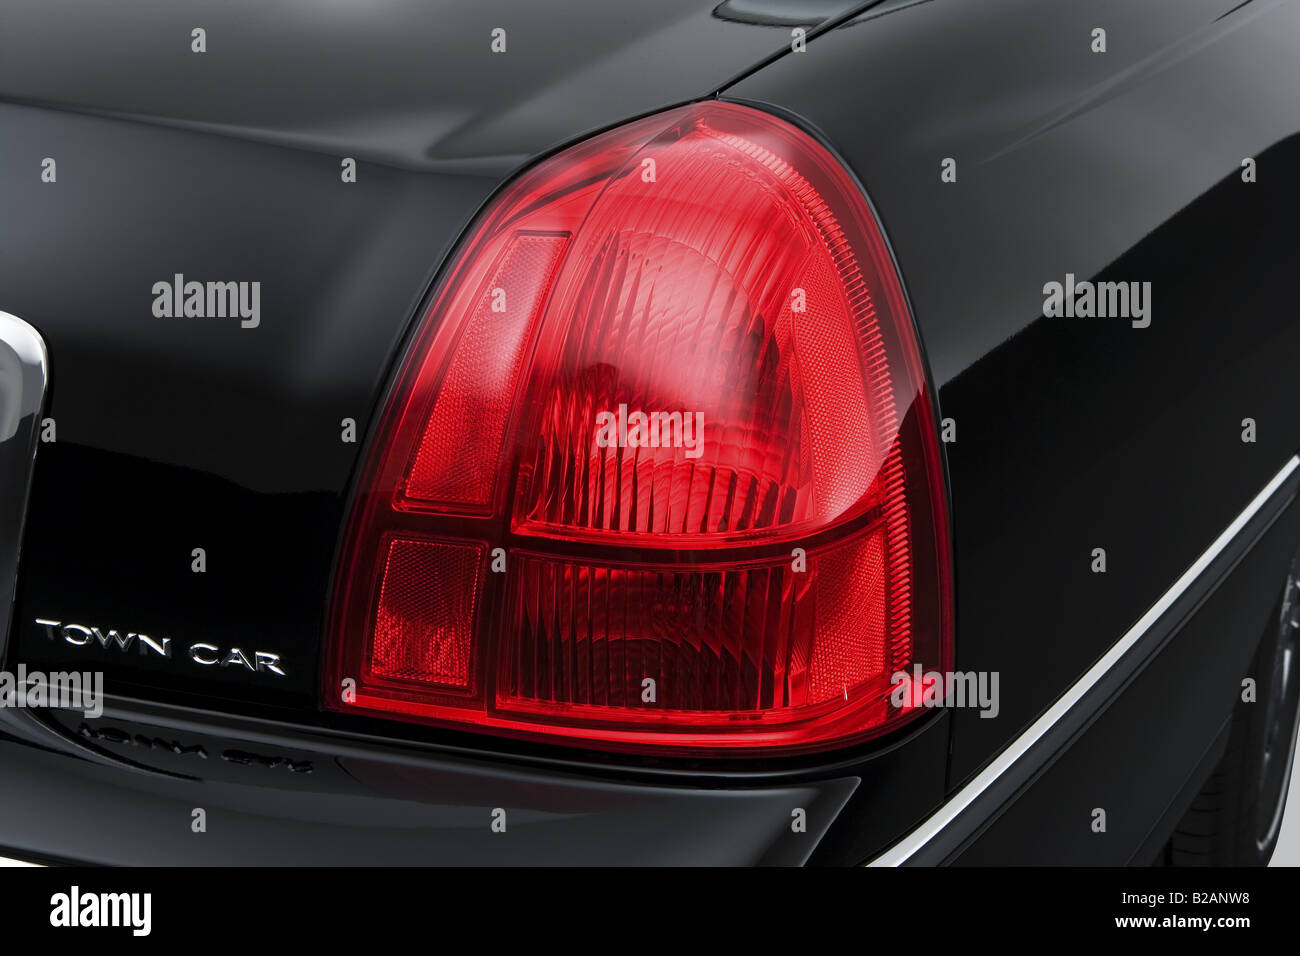 hight resolution of 2008 lincoln town car signature limited in black tail light stock image